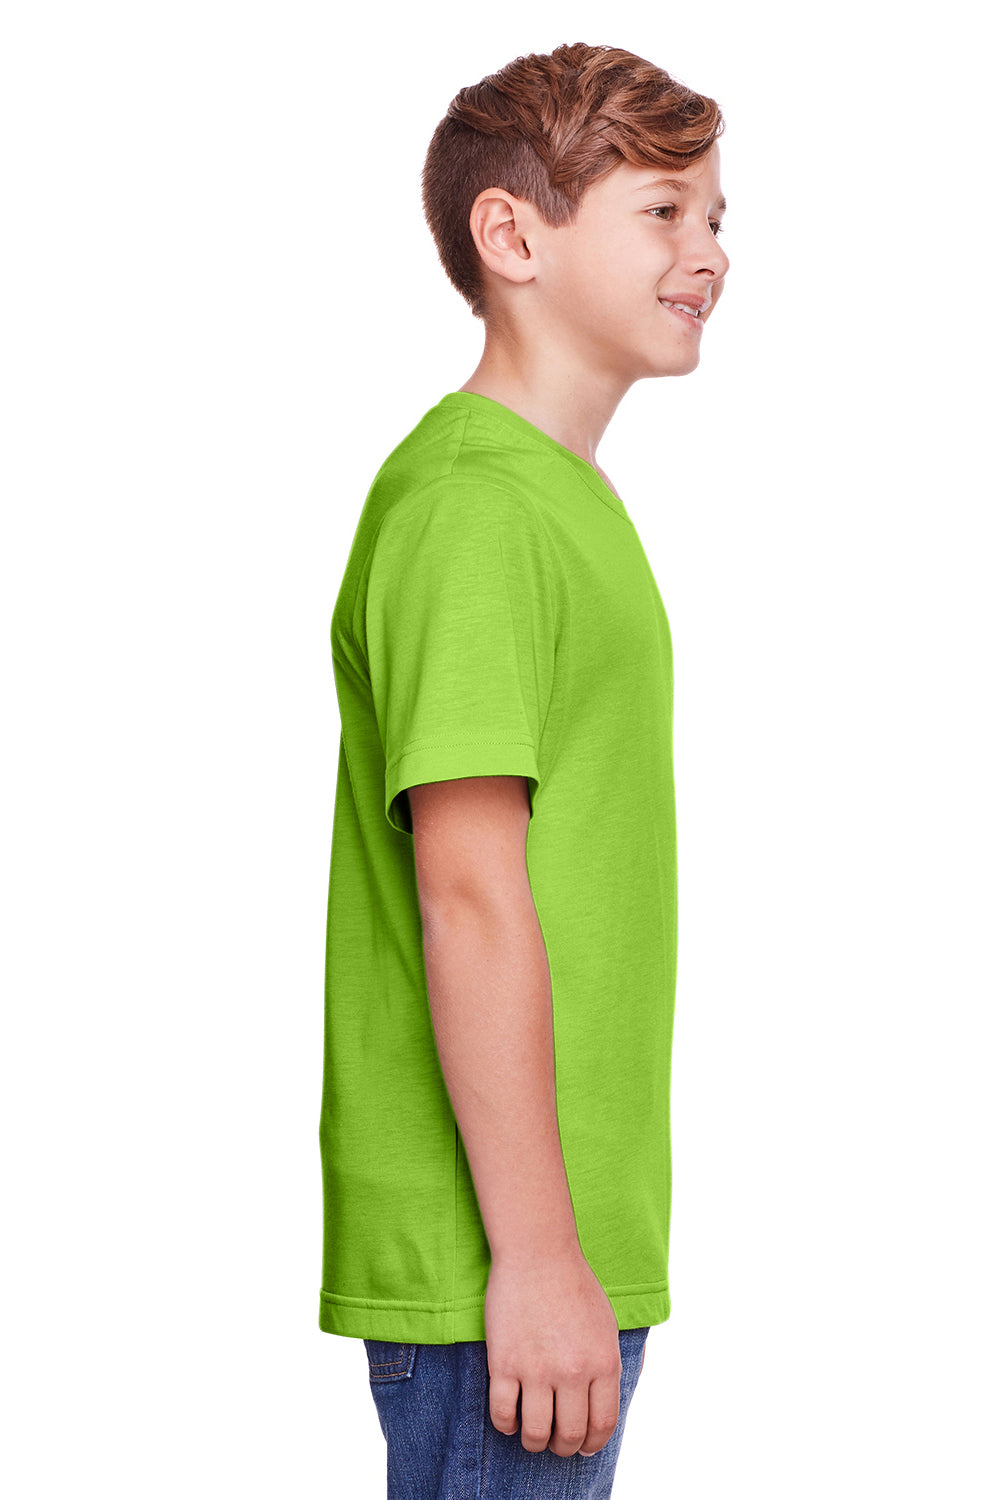 Core 365 CE111Y Youth Fusion ChromaSoft Performance Moisture Wicking Short Sleeve Crewneck T-Shirt Acid Green Side